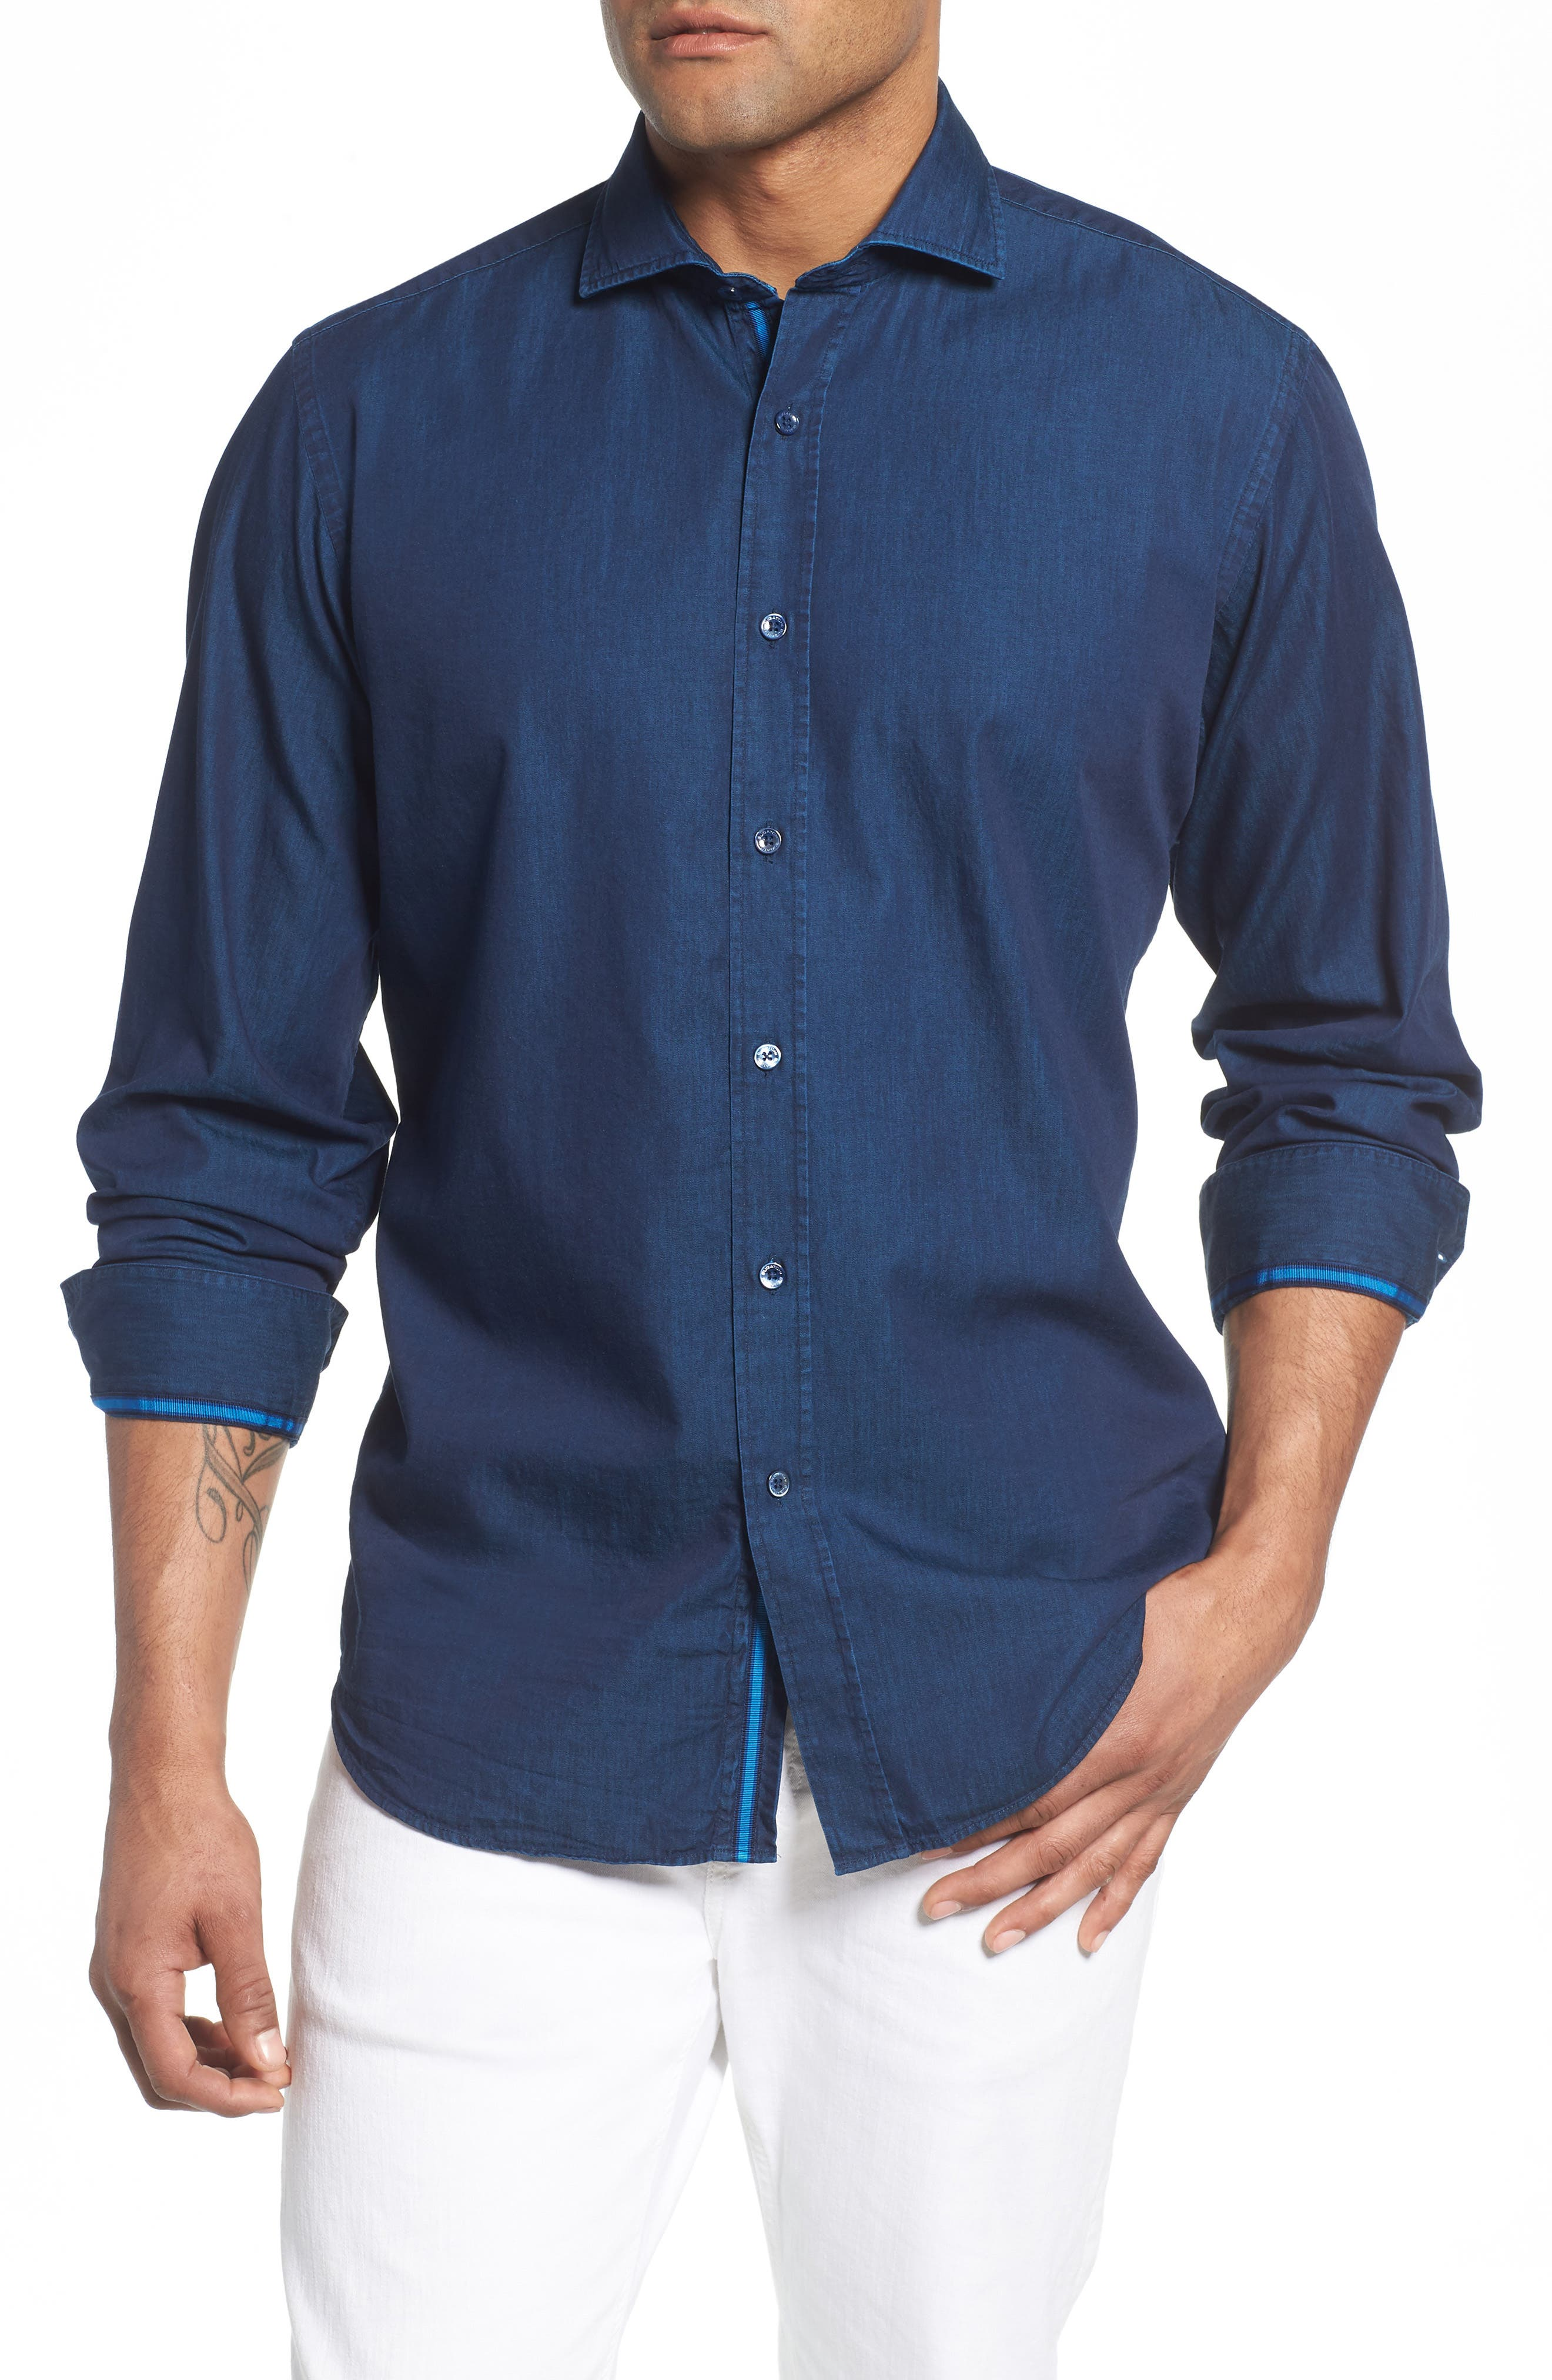 Classic Fit Indigo Sport Shirt,                             Main thumbnail 1, color,                             Navy